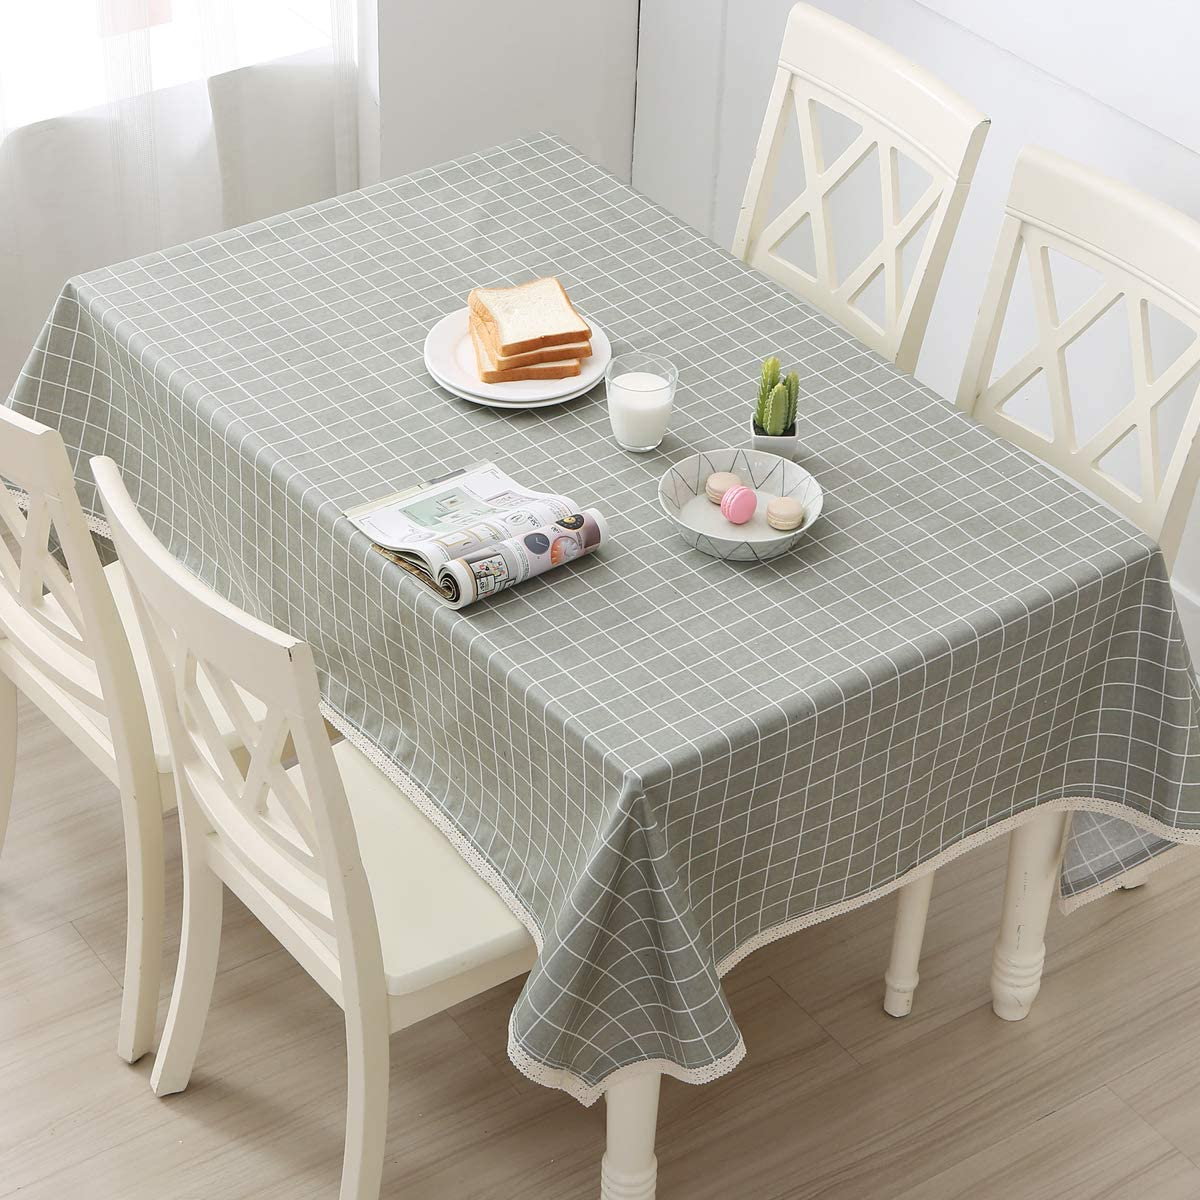 F634-9 Code Marble Ragroll PVC Vinyl Wipe Clean Tablecloth ALL SIZES